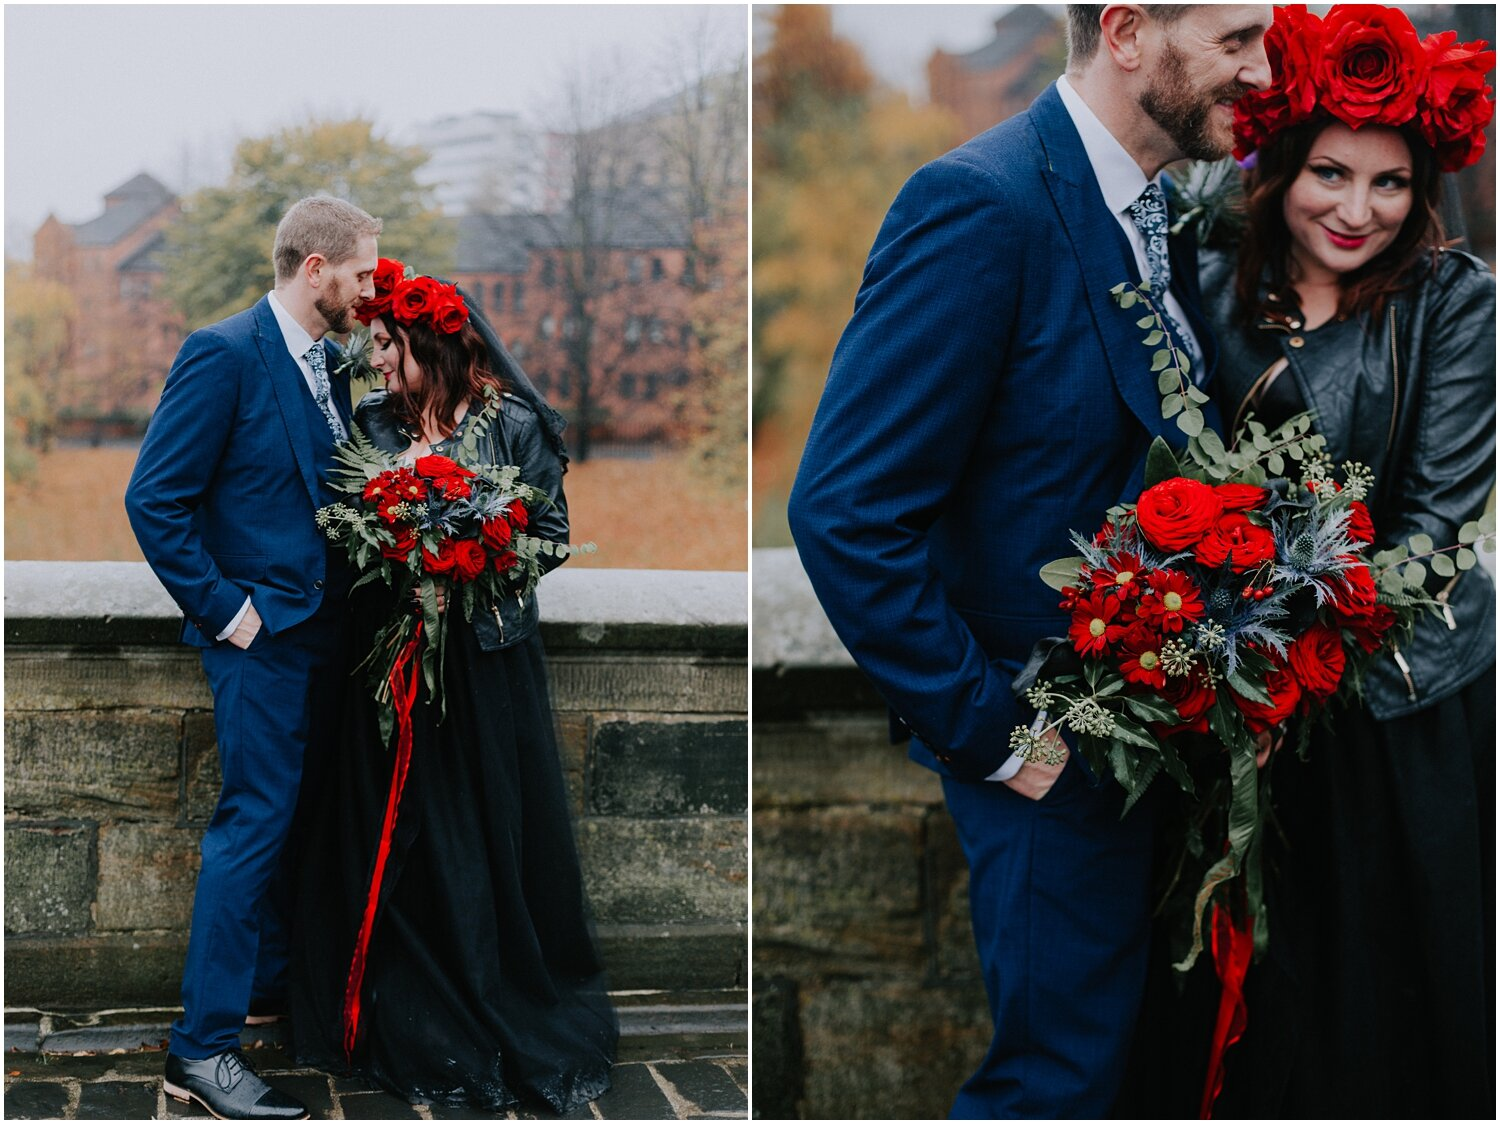 The couple is posing on the bridge of the Glasgow Cathedral